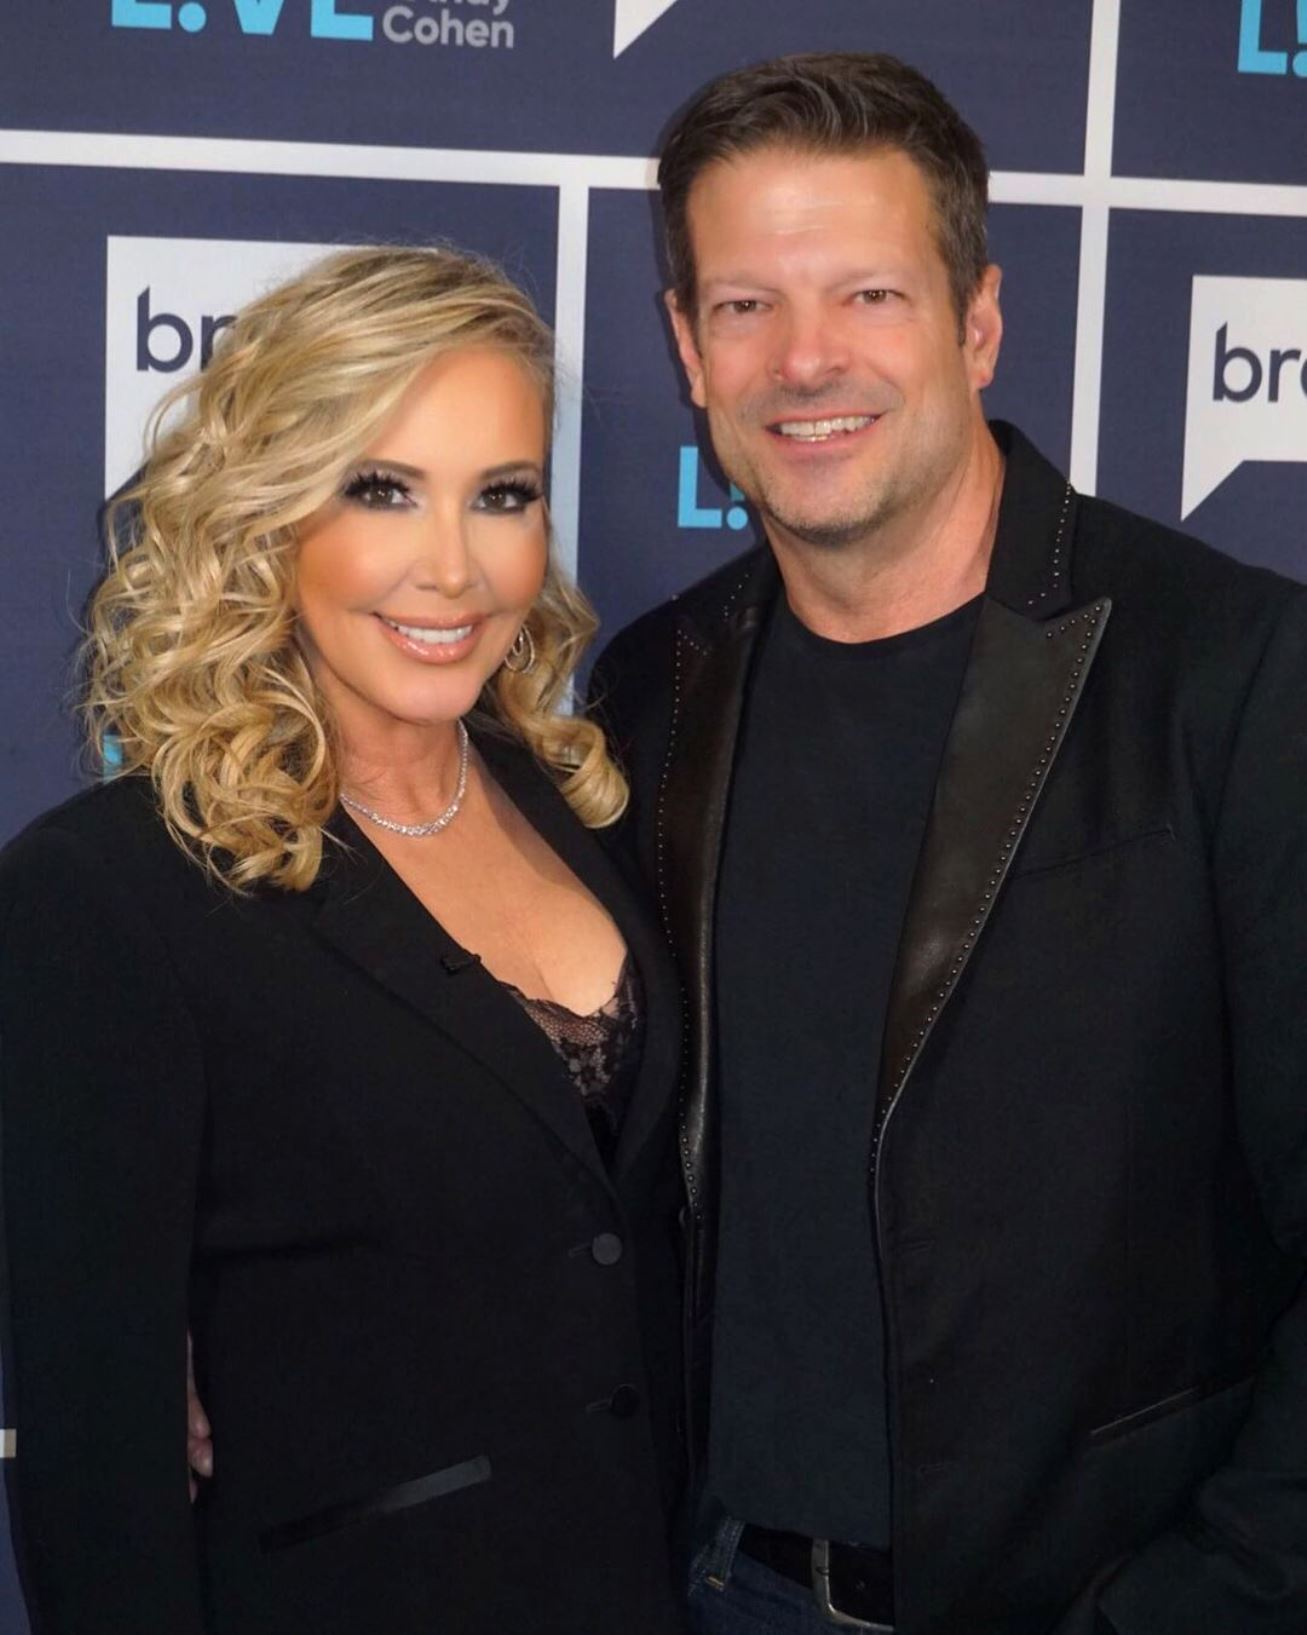 RHOC's Shannon Beador Shares Relationship Status With Boyfriend John Janssen After Traveling to Mexico to Without Him, Responds to Criticism For Leaving Country Amid Pandemic